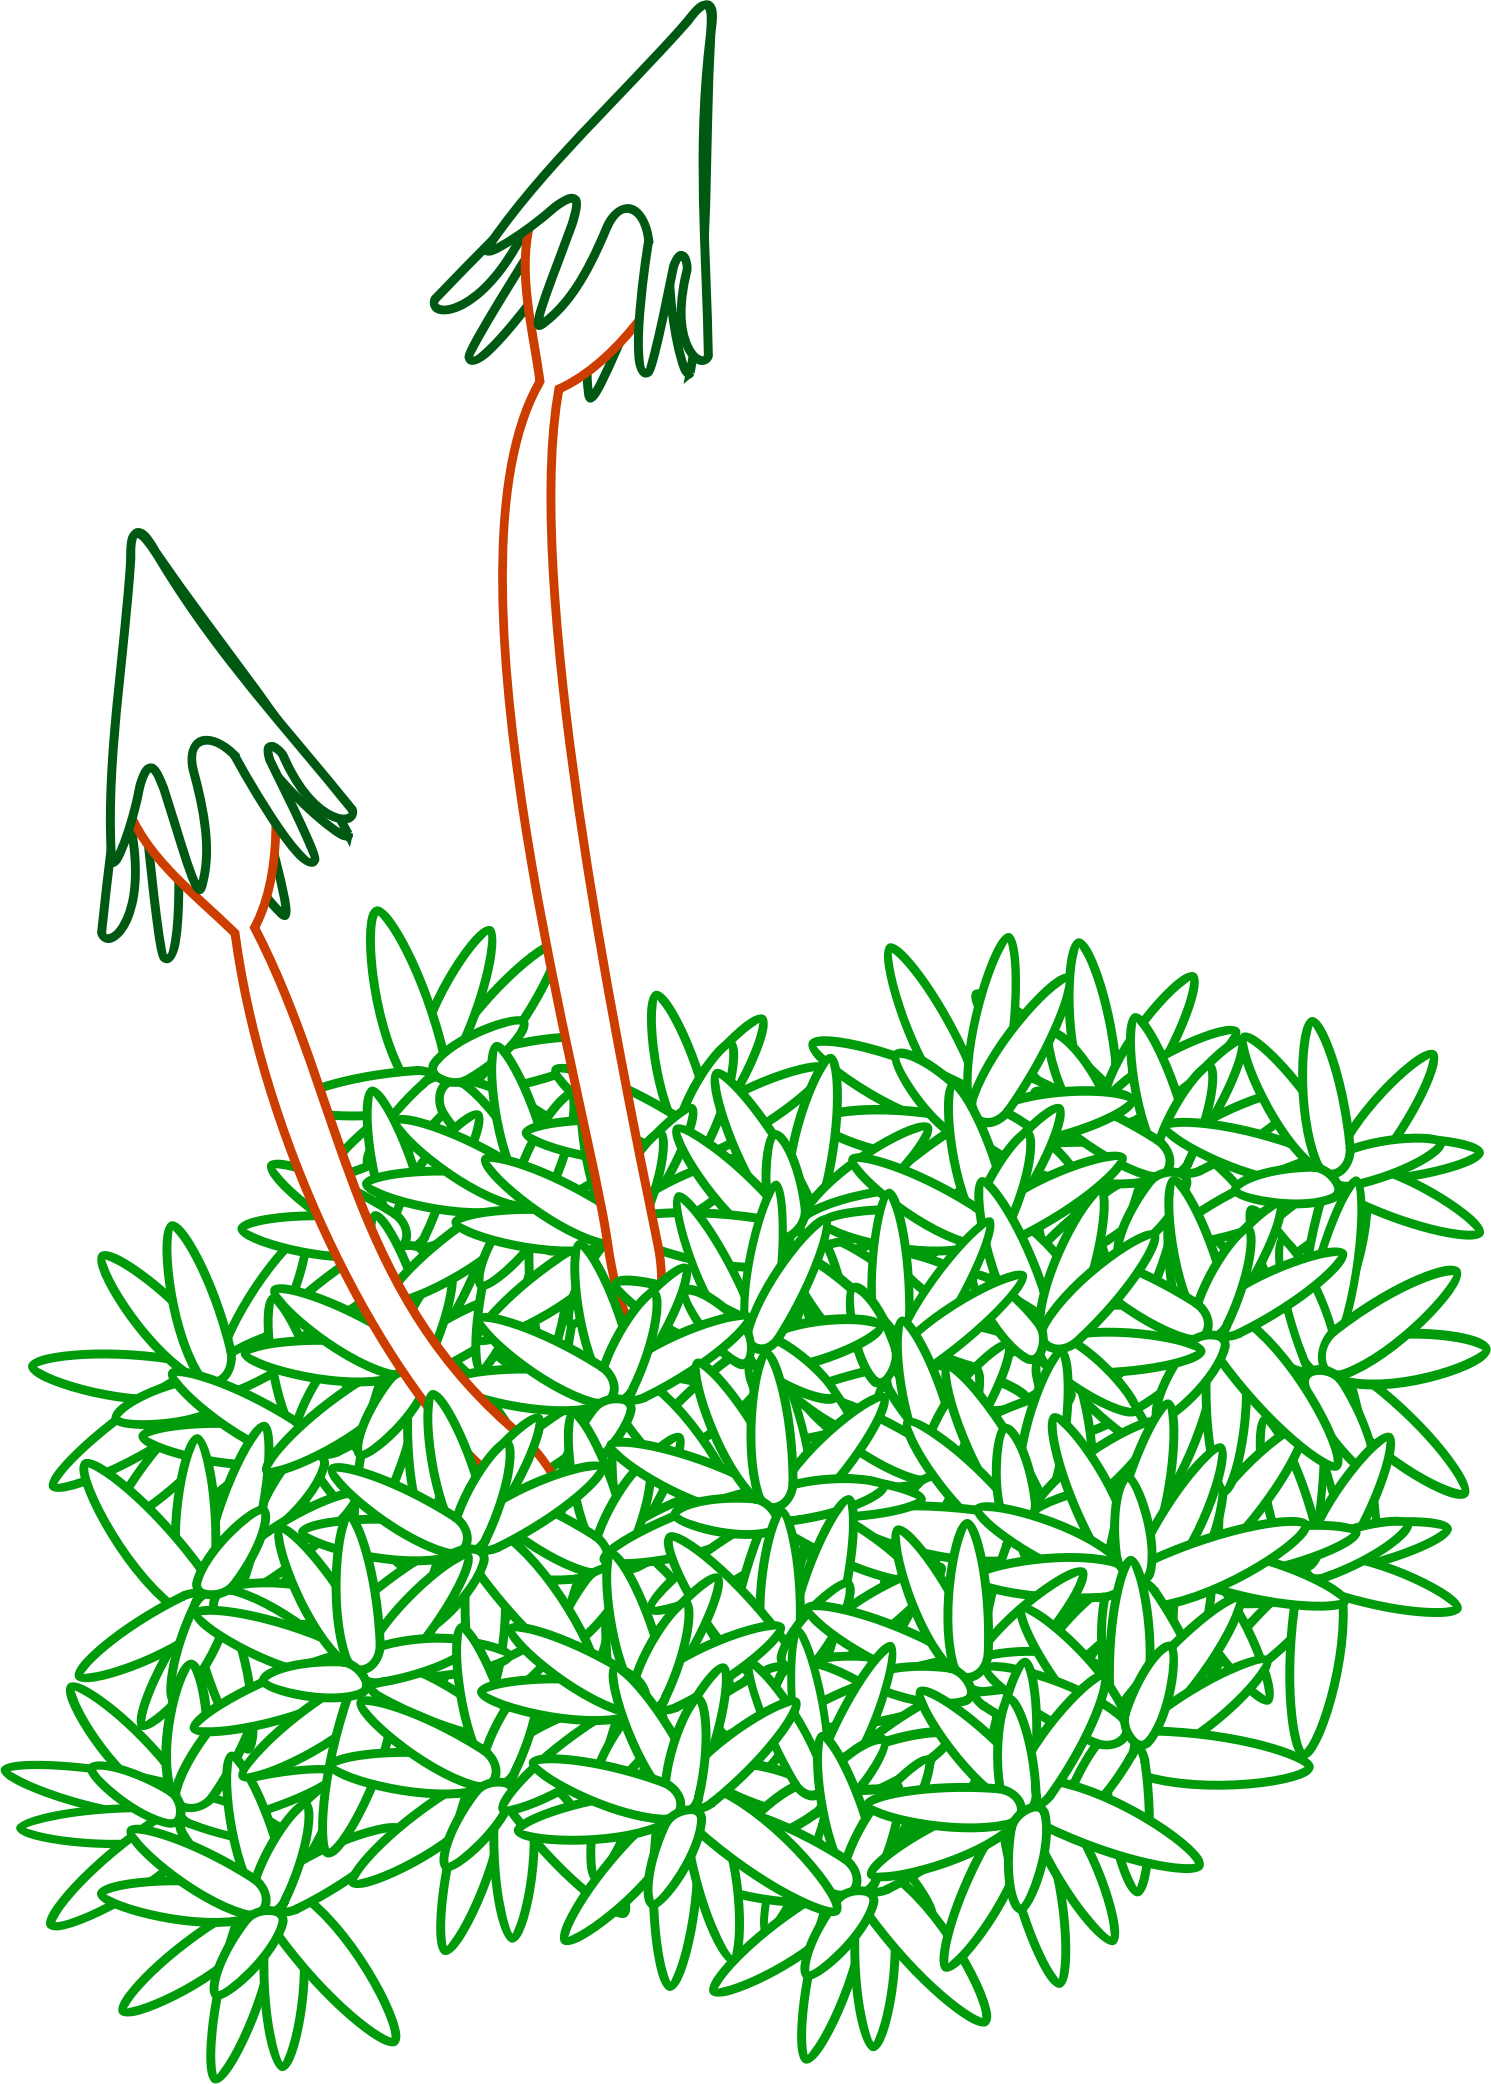 Moses clipart moss. Free on dumielauxepices net